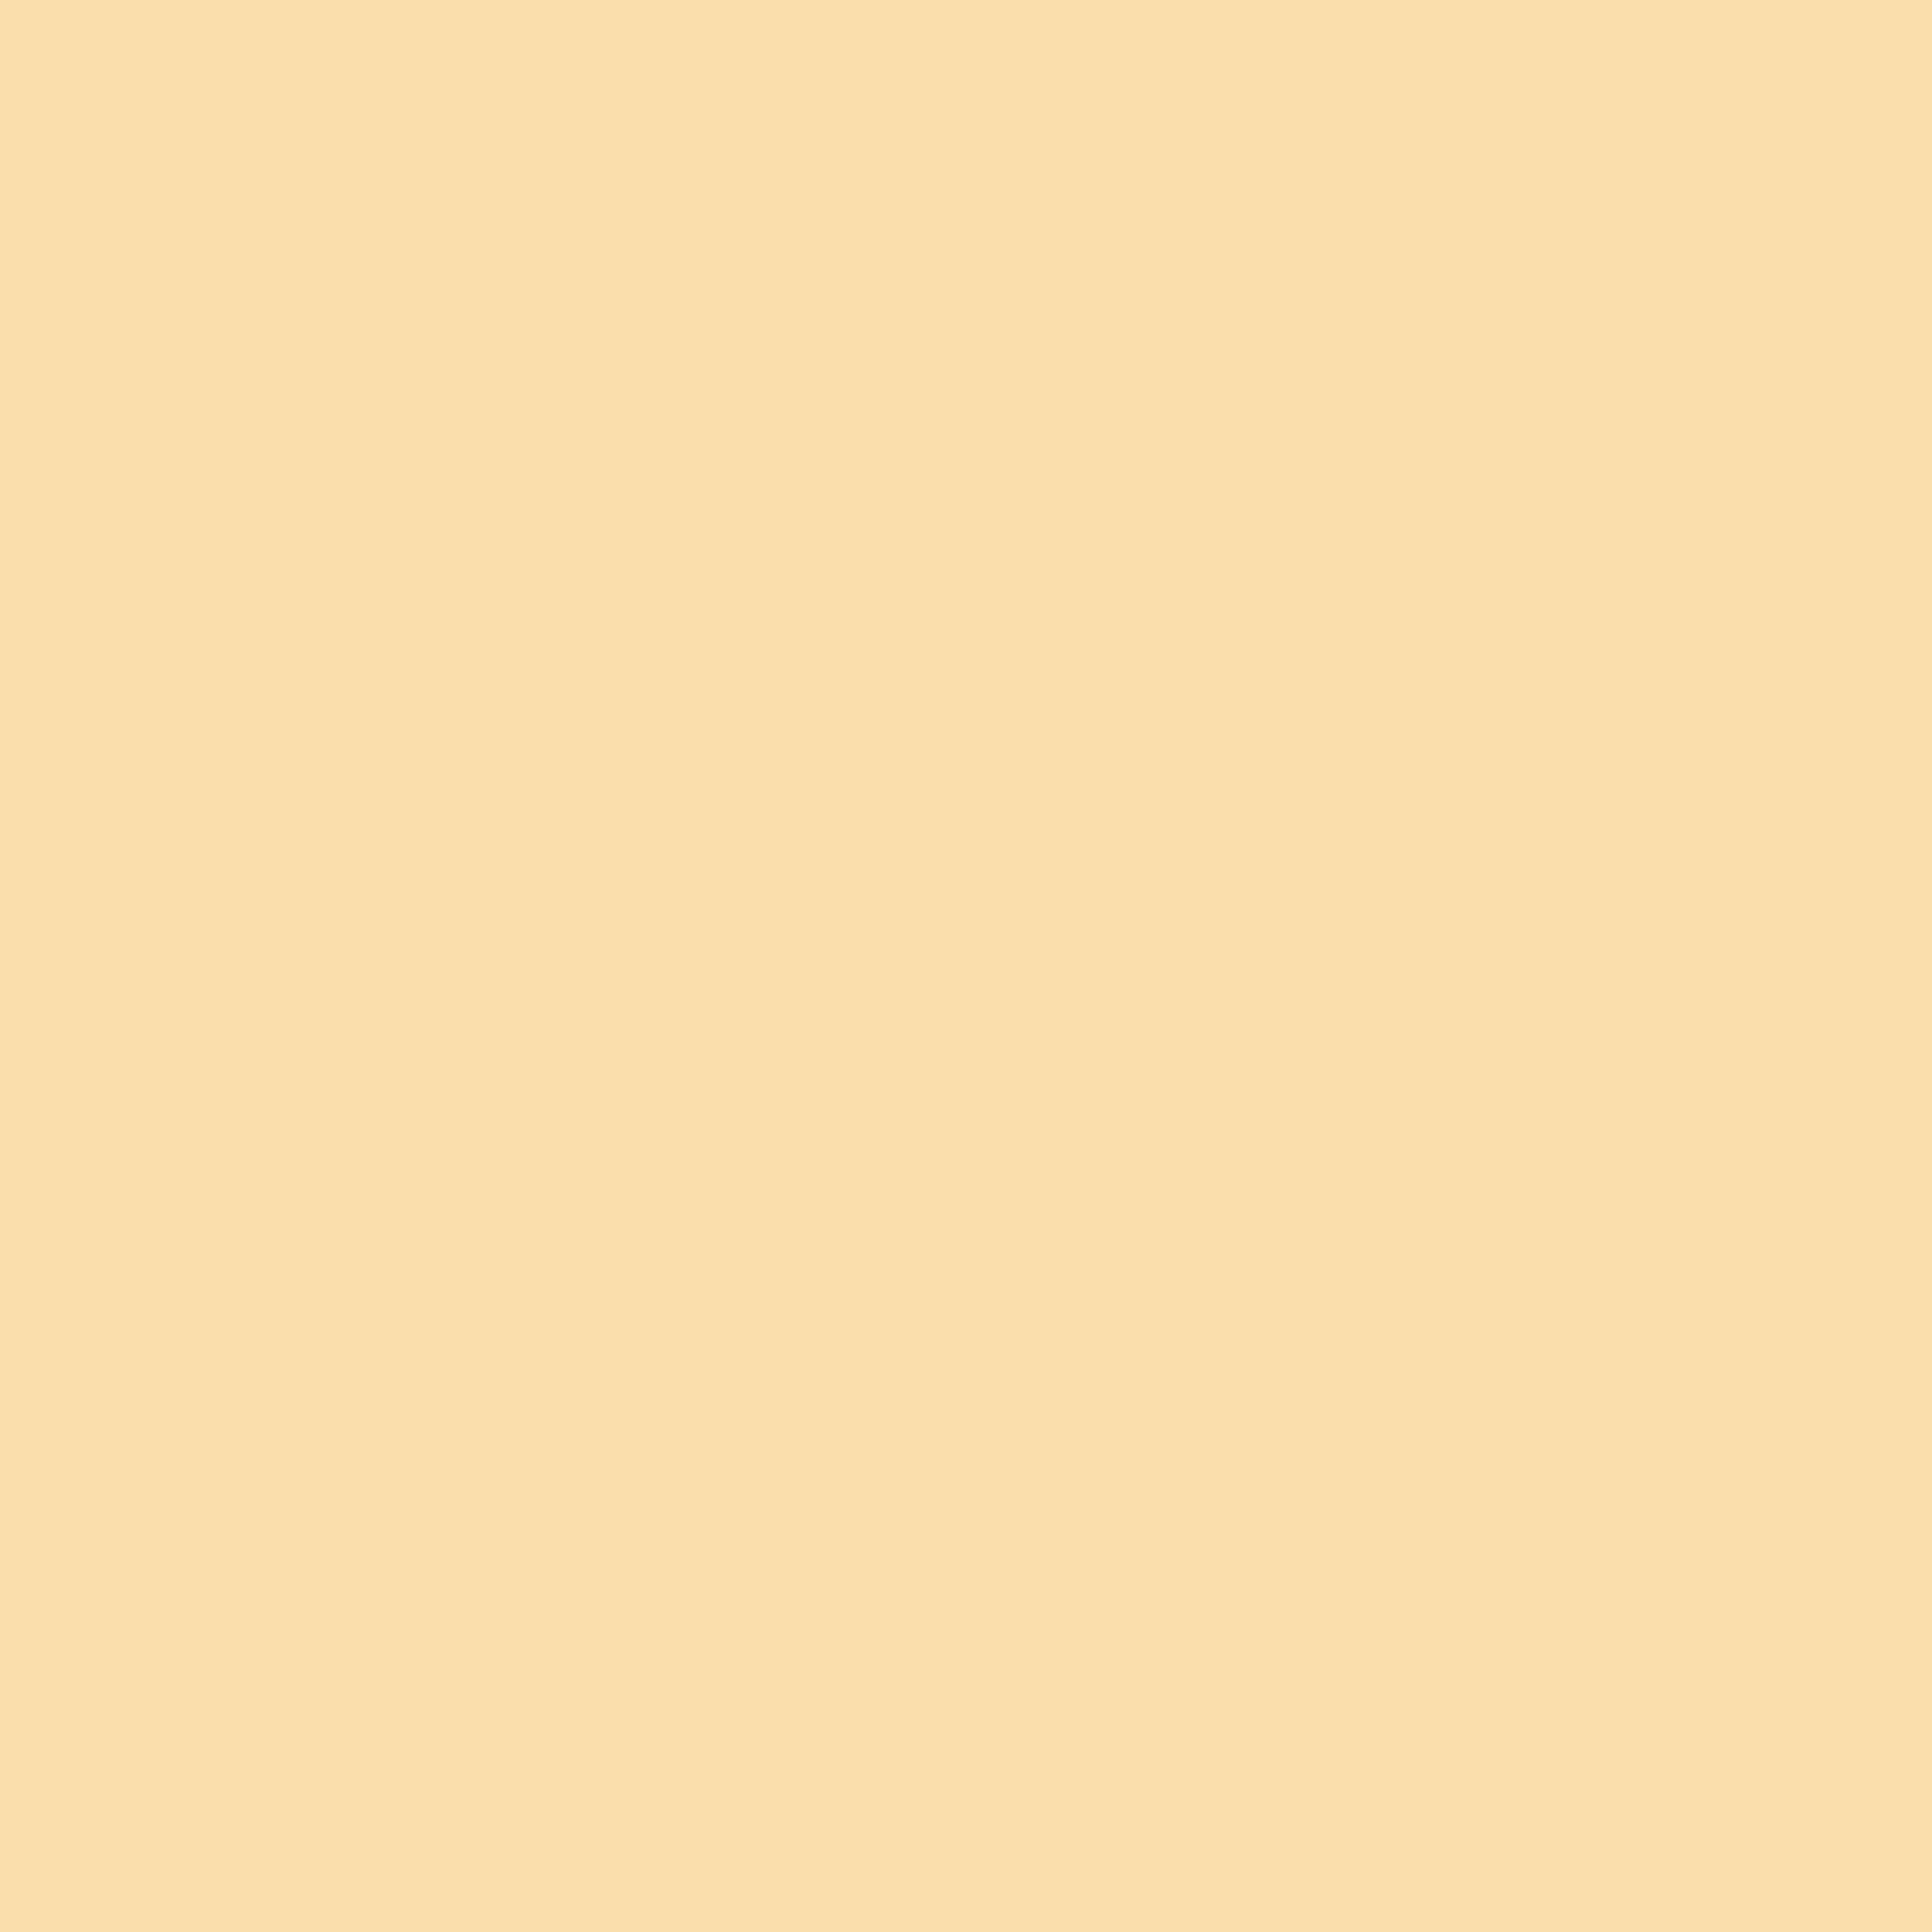 3600x3600 Peach-yellow Solid Color Background